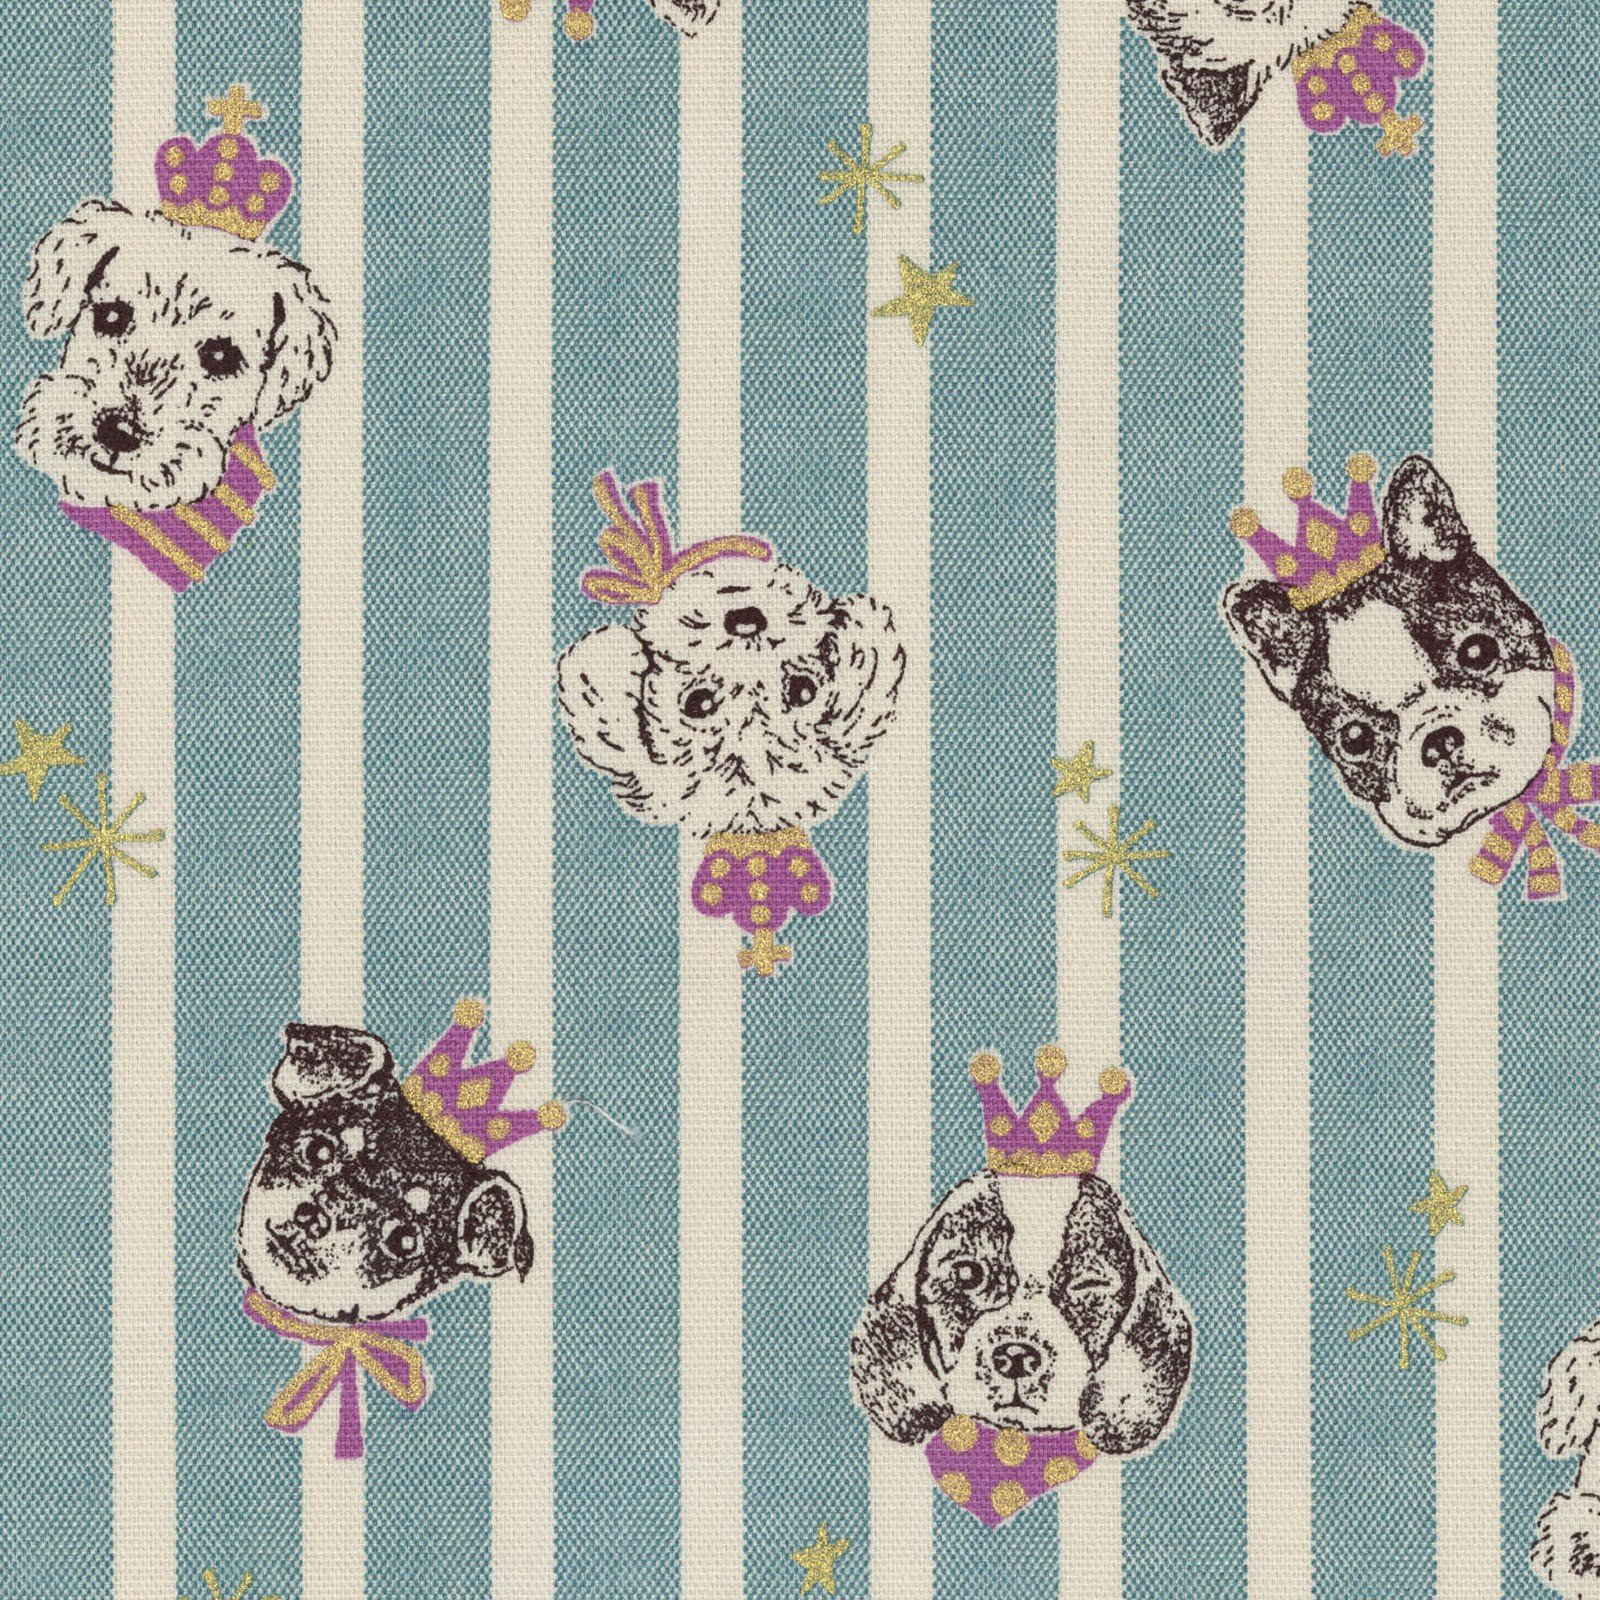 COMING SOON JULY 2018! Puppy Dogs Royal Crown Stripe Retro Japanese Asian Cotton Oxford Cloth Cotton Fabric